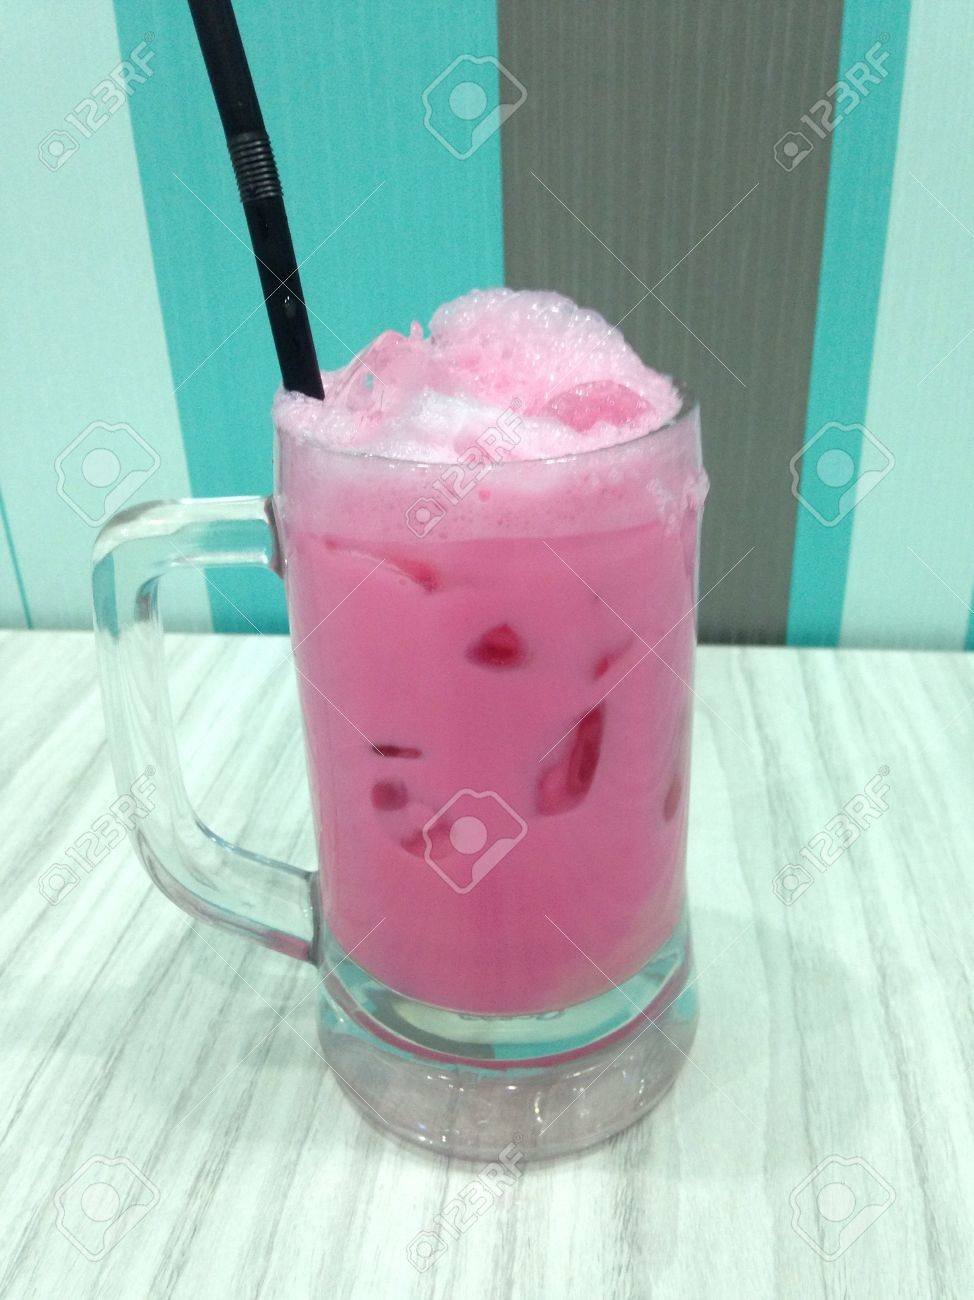 Special Drink Sirap Bandung Stock Photo Picture And Royalty Free